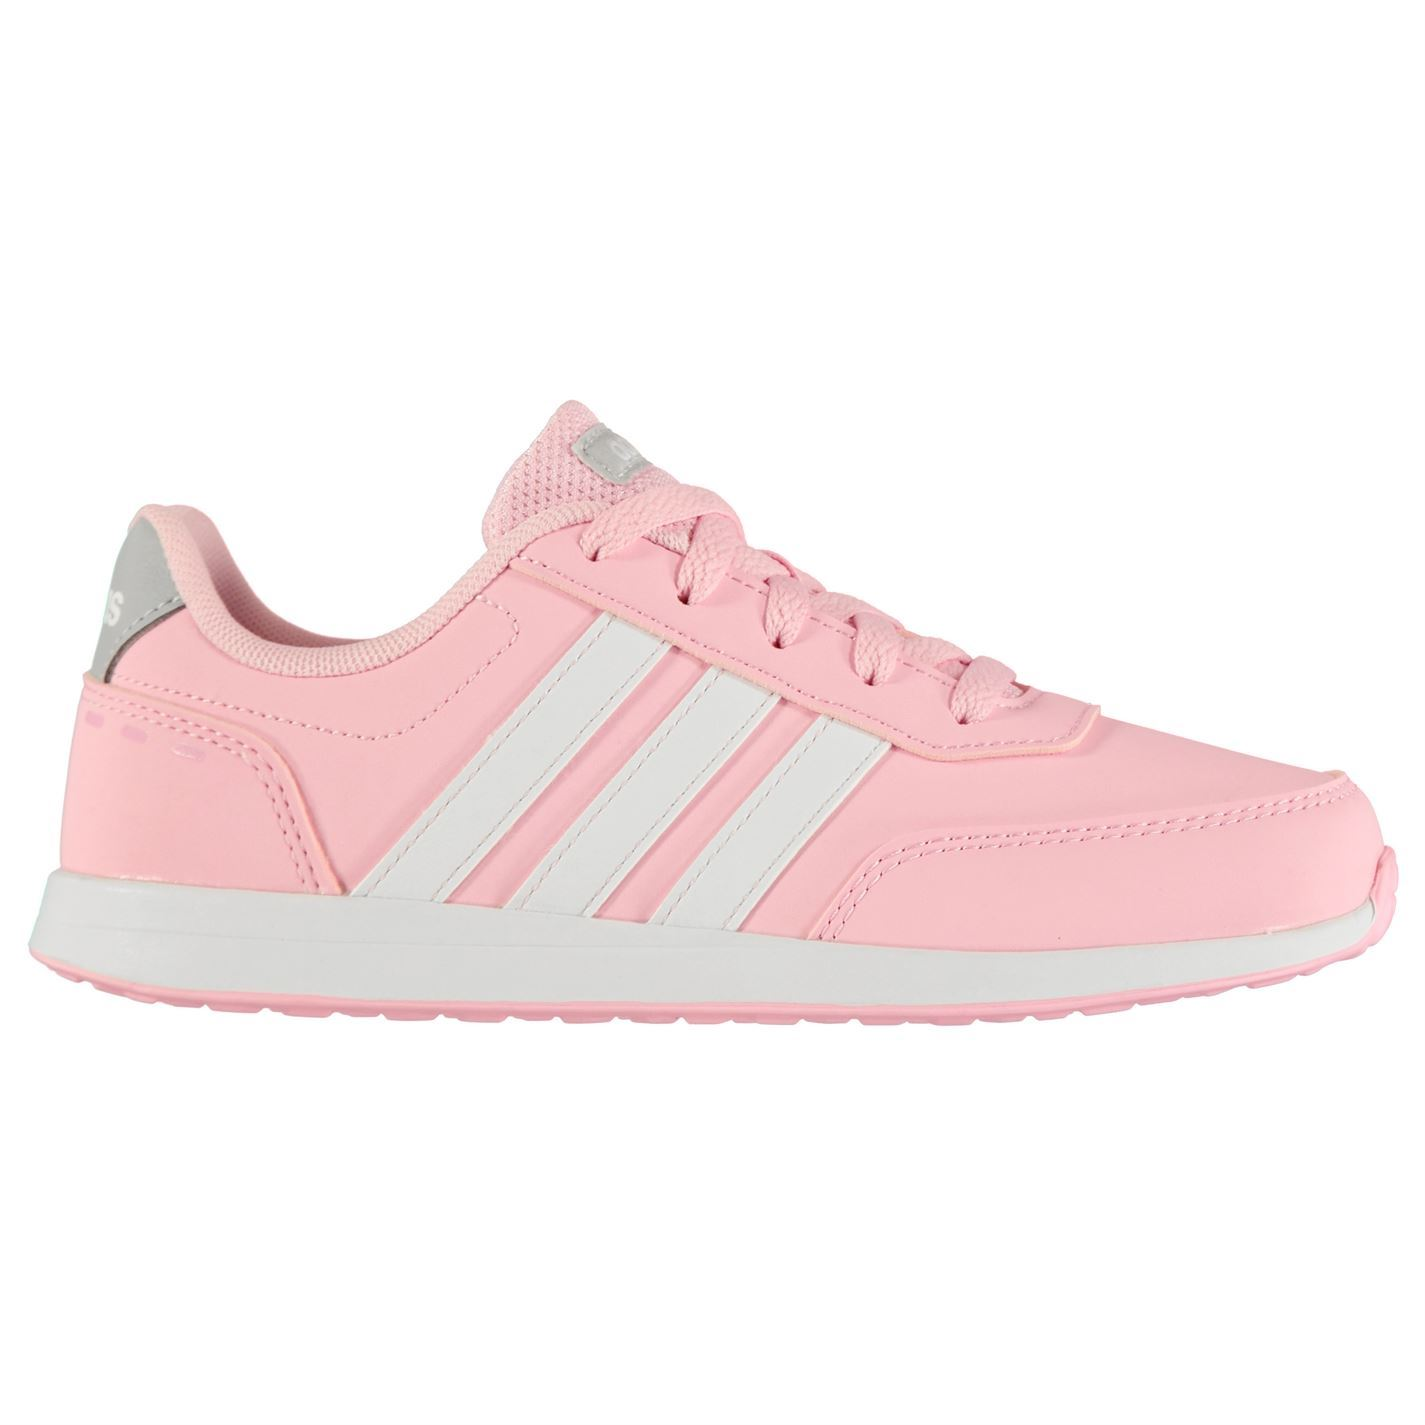 Details about adidas Switch 2 Trainers Junior Girls Shoes Footwear